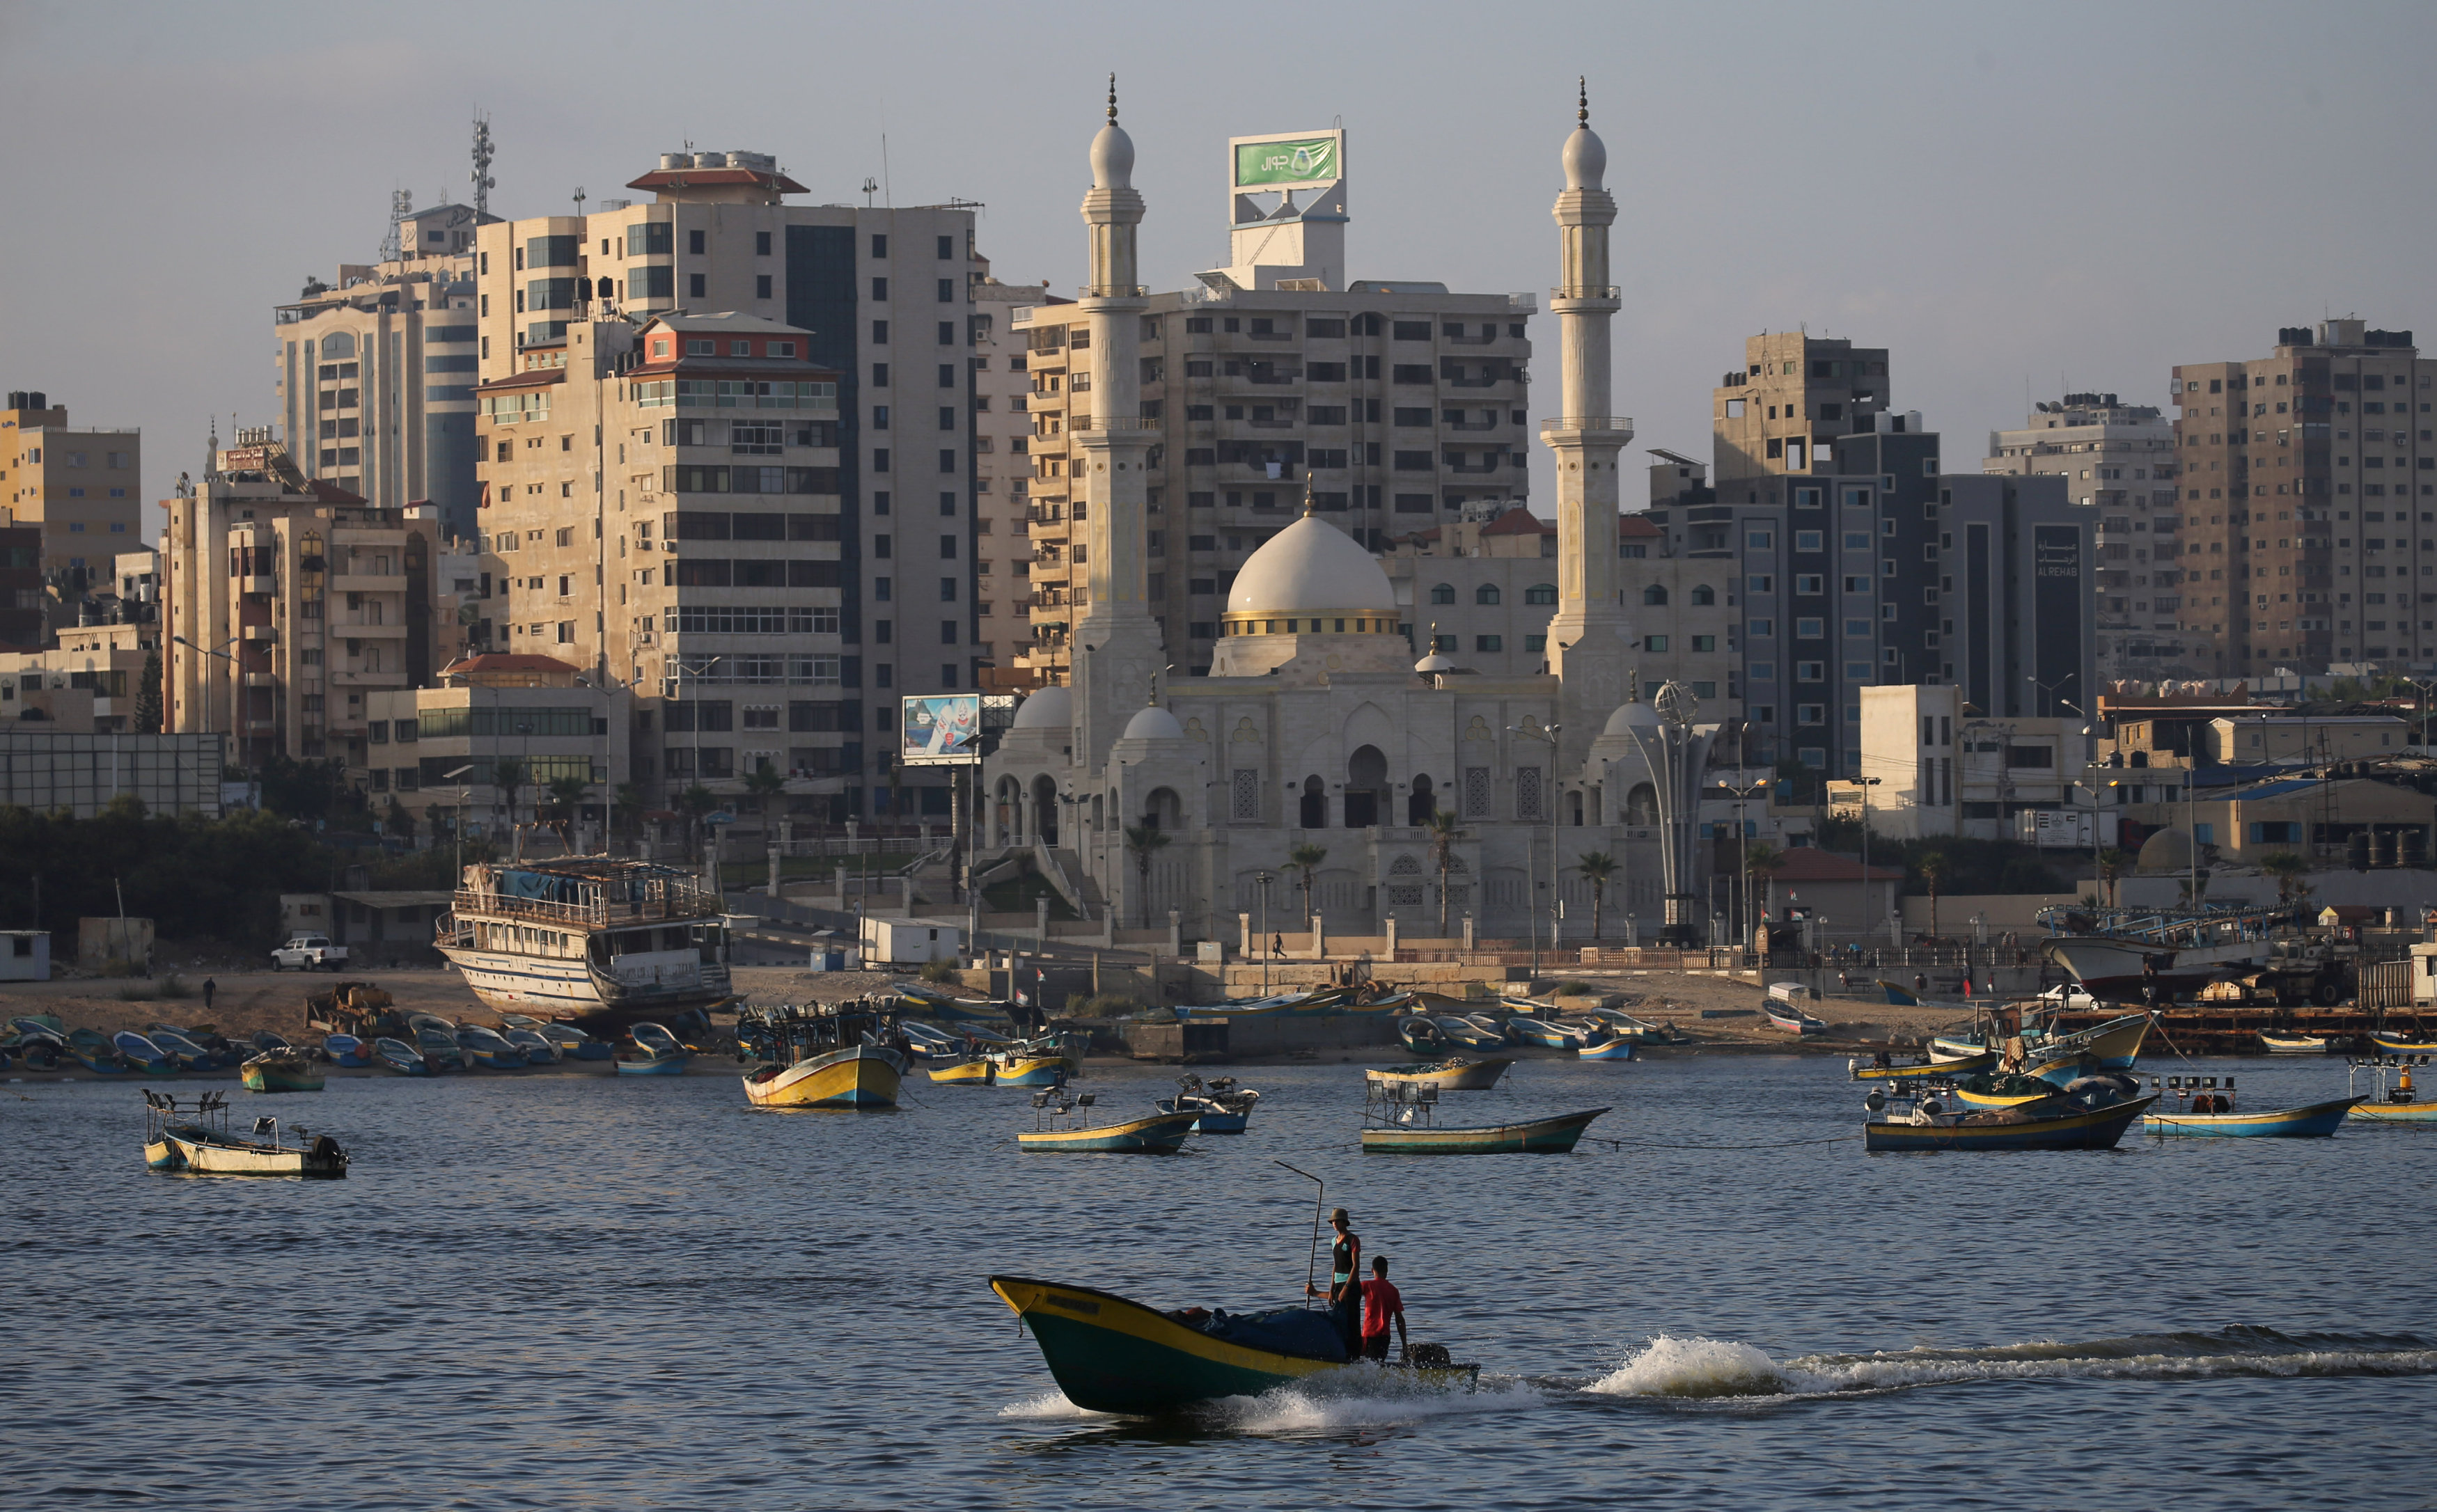 Fishing boats are seen at the seaport of Gaza City August 15, 2018. REUTERS/Ibraheem Abu Mustafa